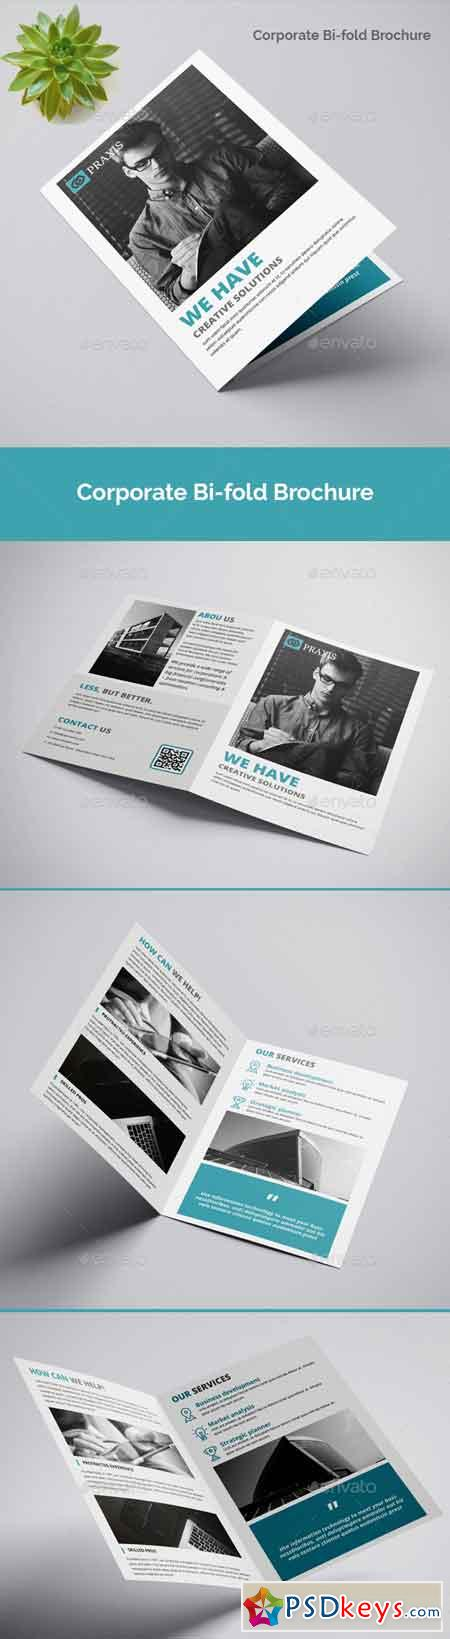 Latest Articles » page 2386 » Free Download Photoshop Vector